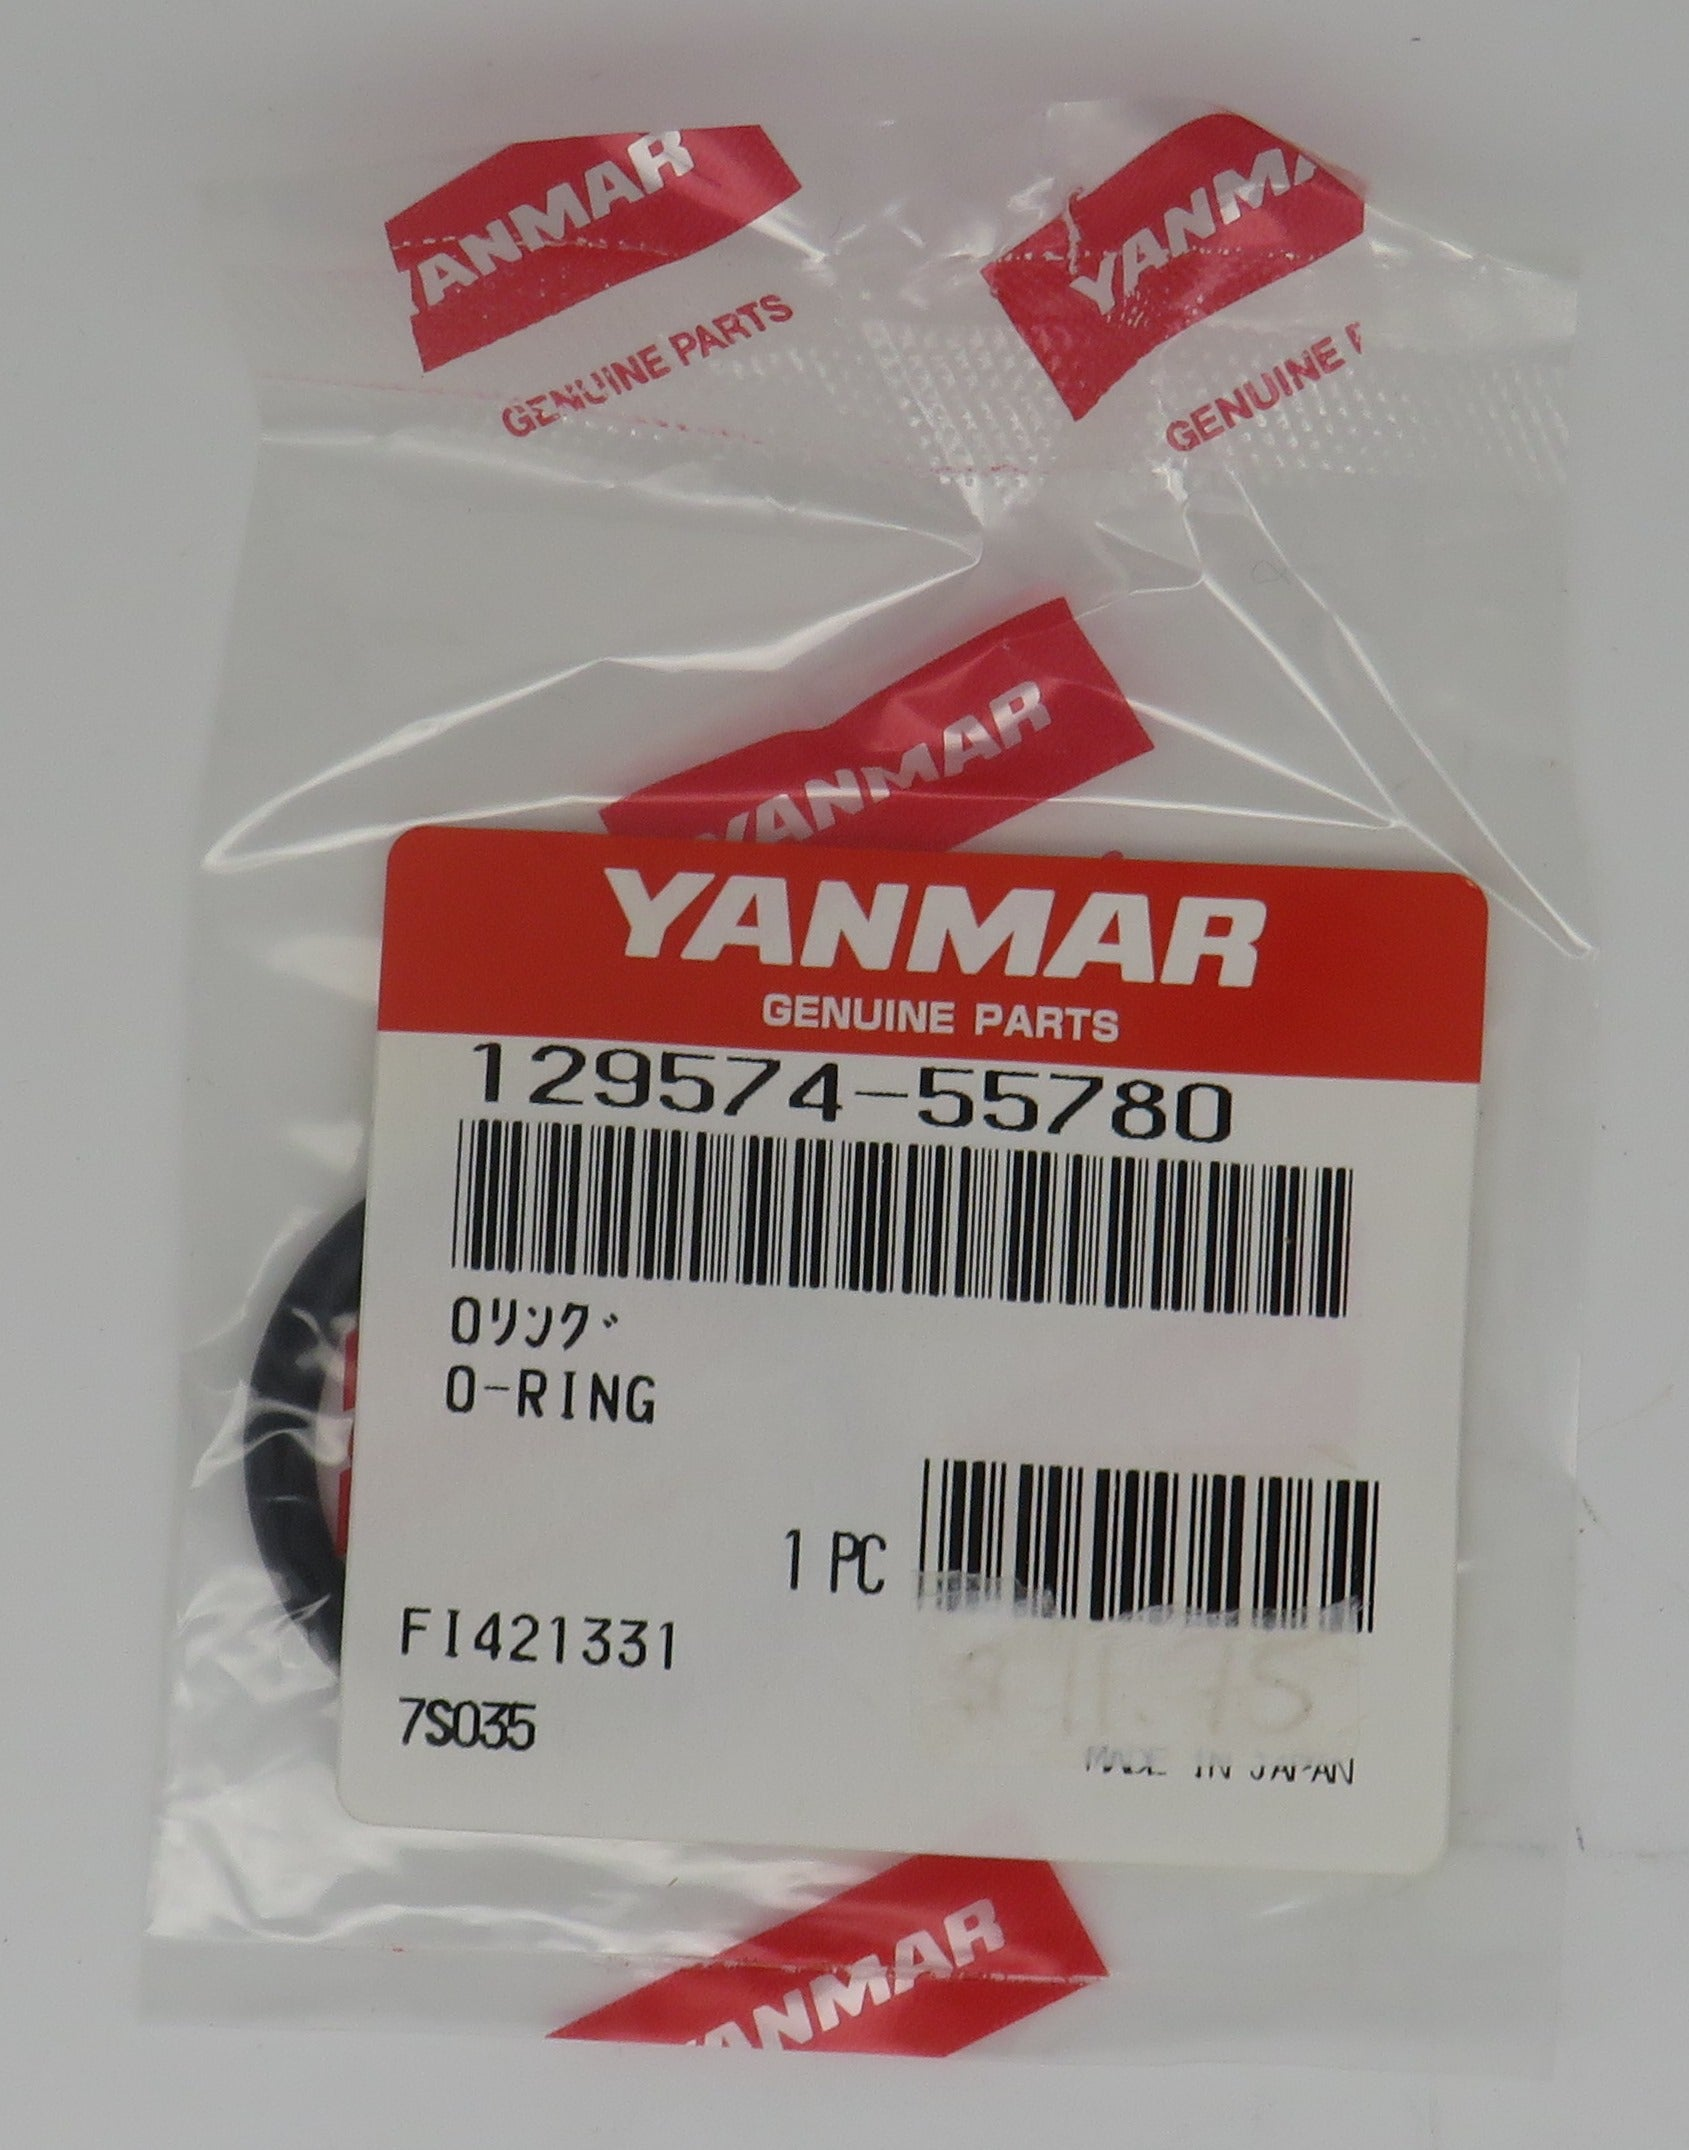 129574-55780 Yanmar O'Ring for the Yanmar Fuel Filter 370-129574-55711